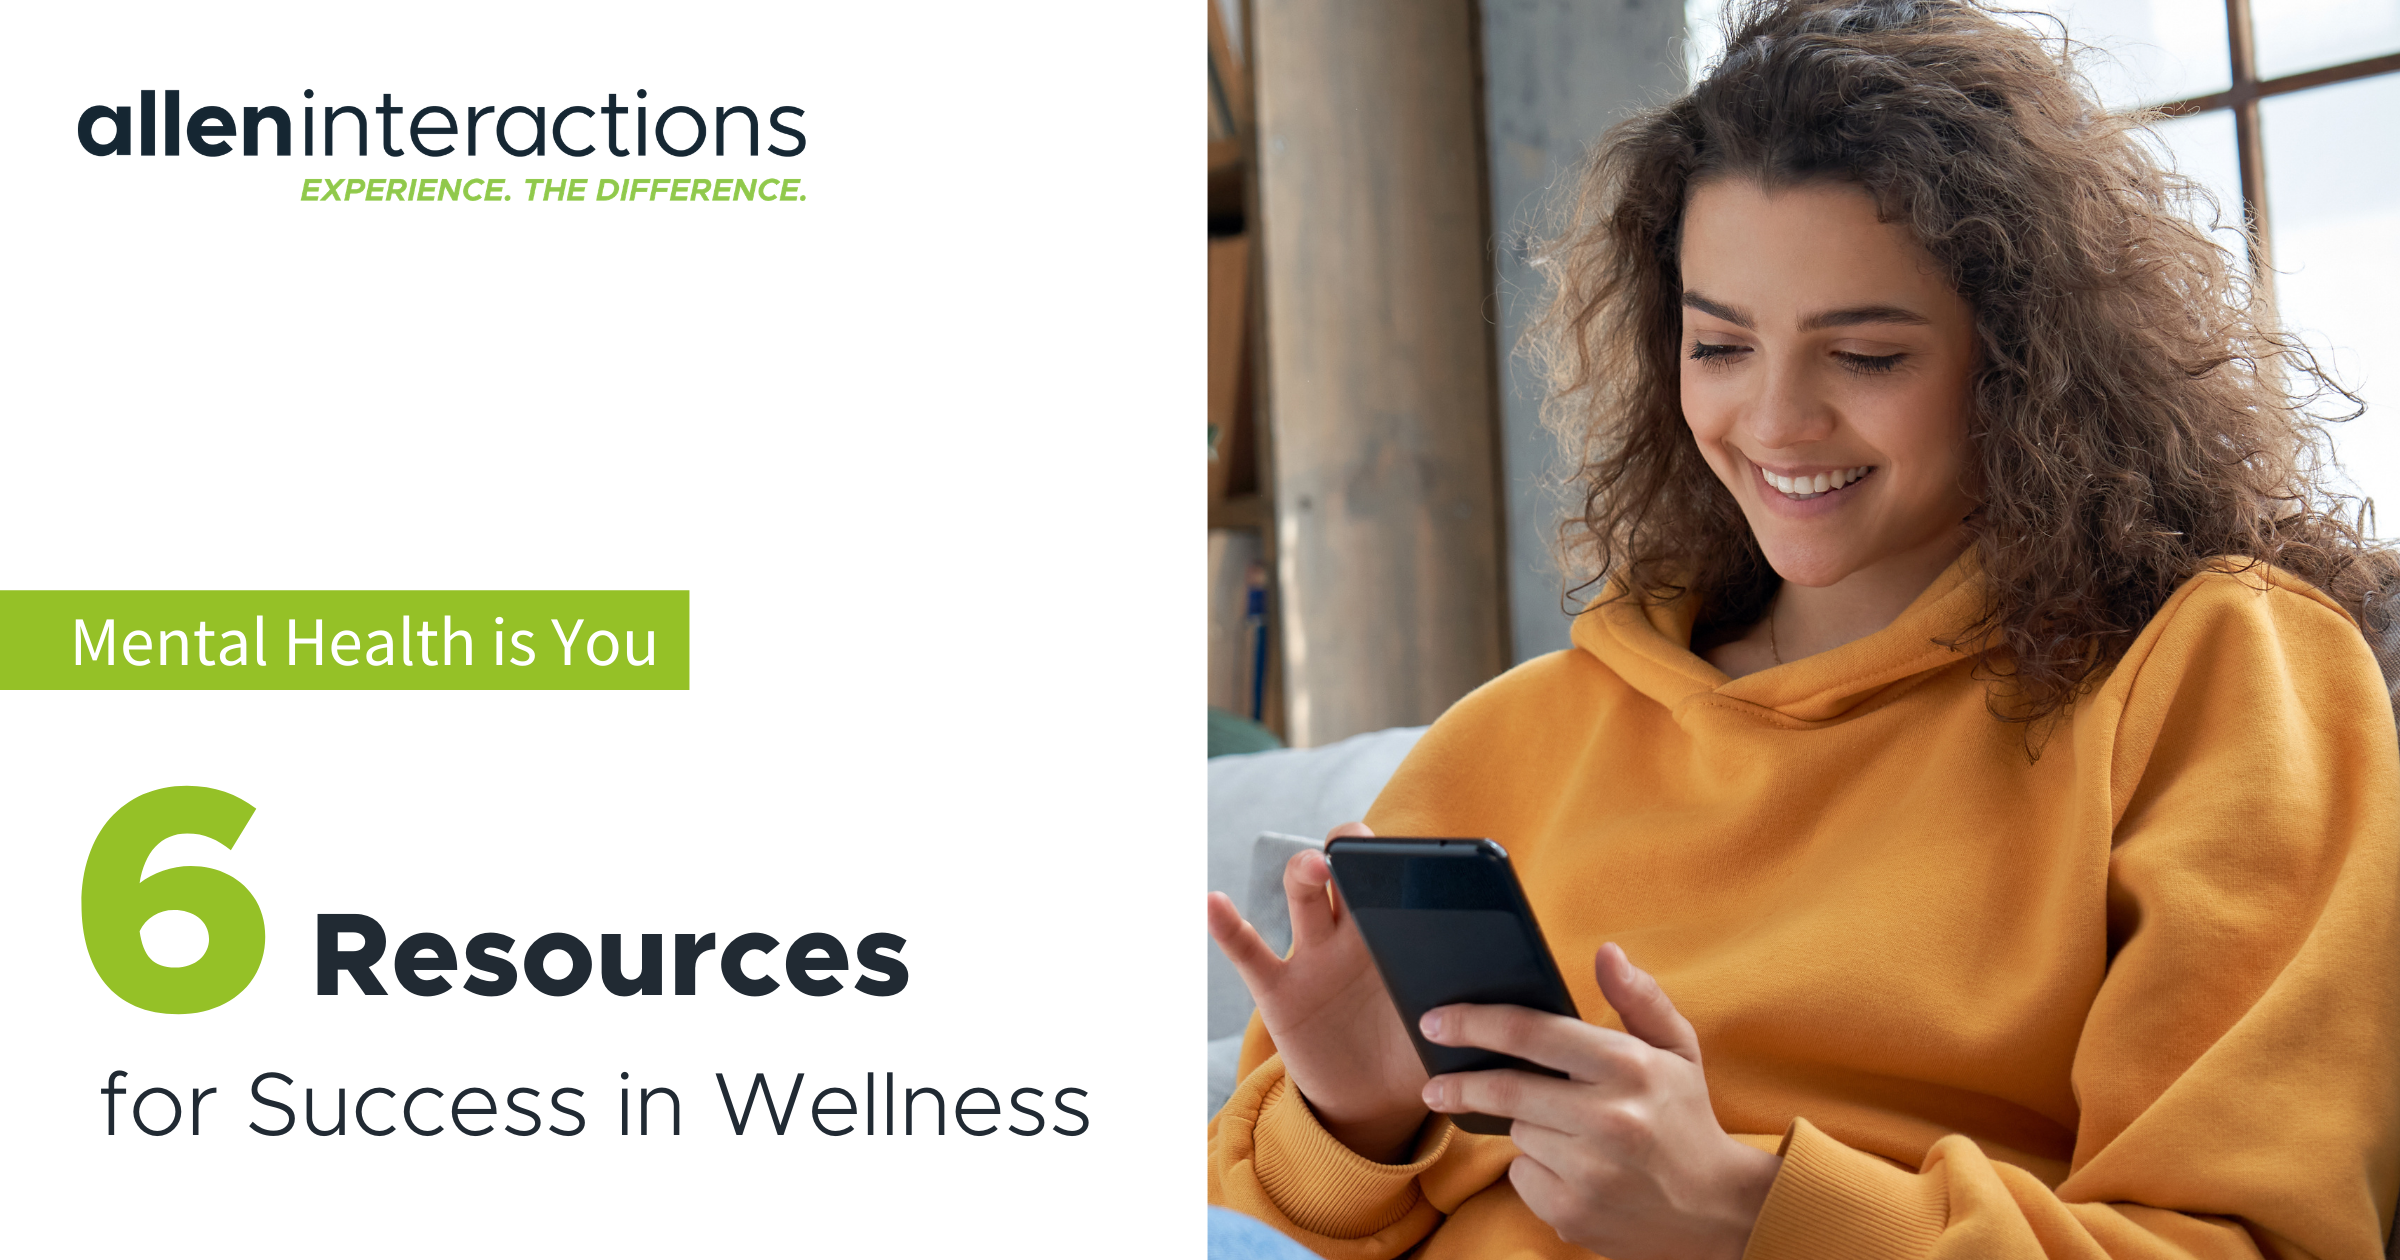 Mental Health is You - 6 Resources for Success in Wellness